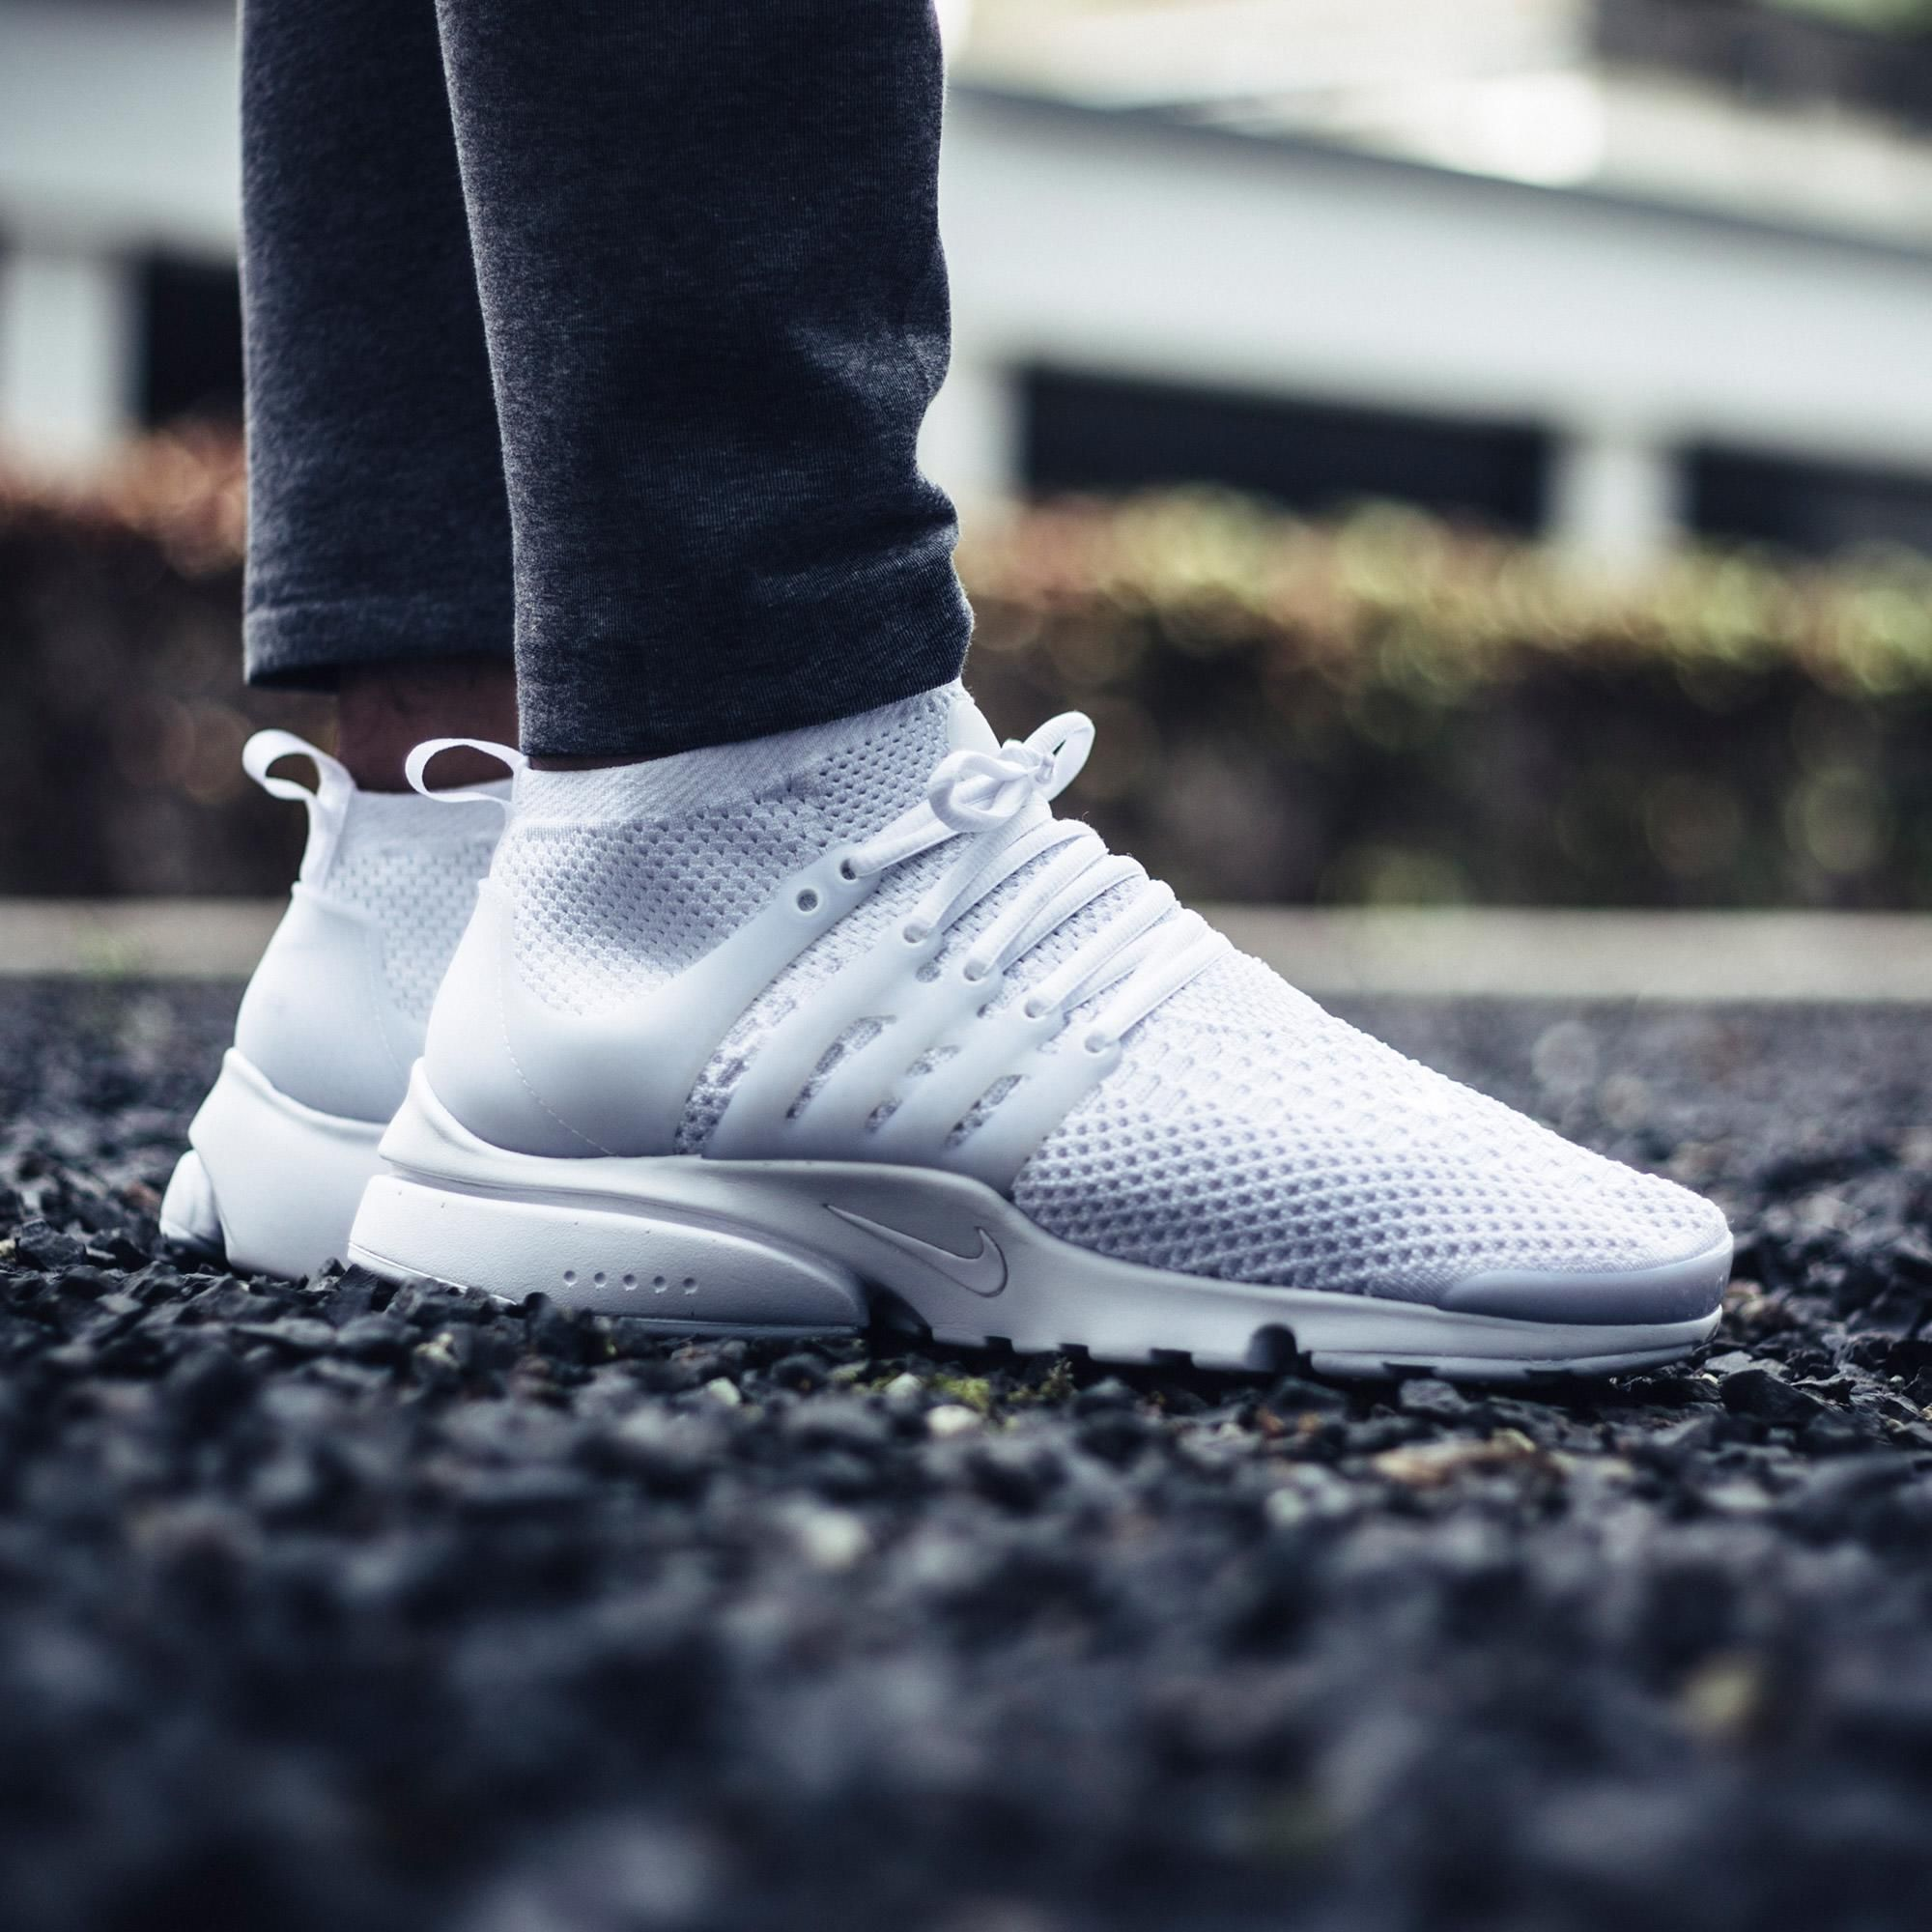 df6f7894a215 An On-Feet Look At The Nike Air Presto Flyknit Ultra White